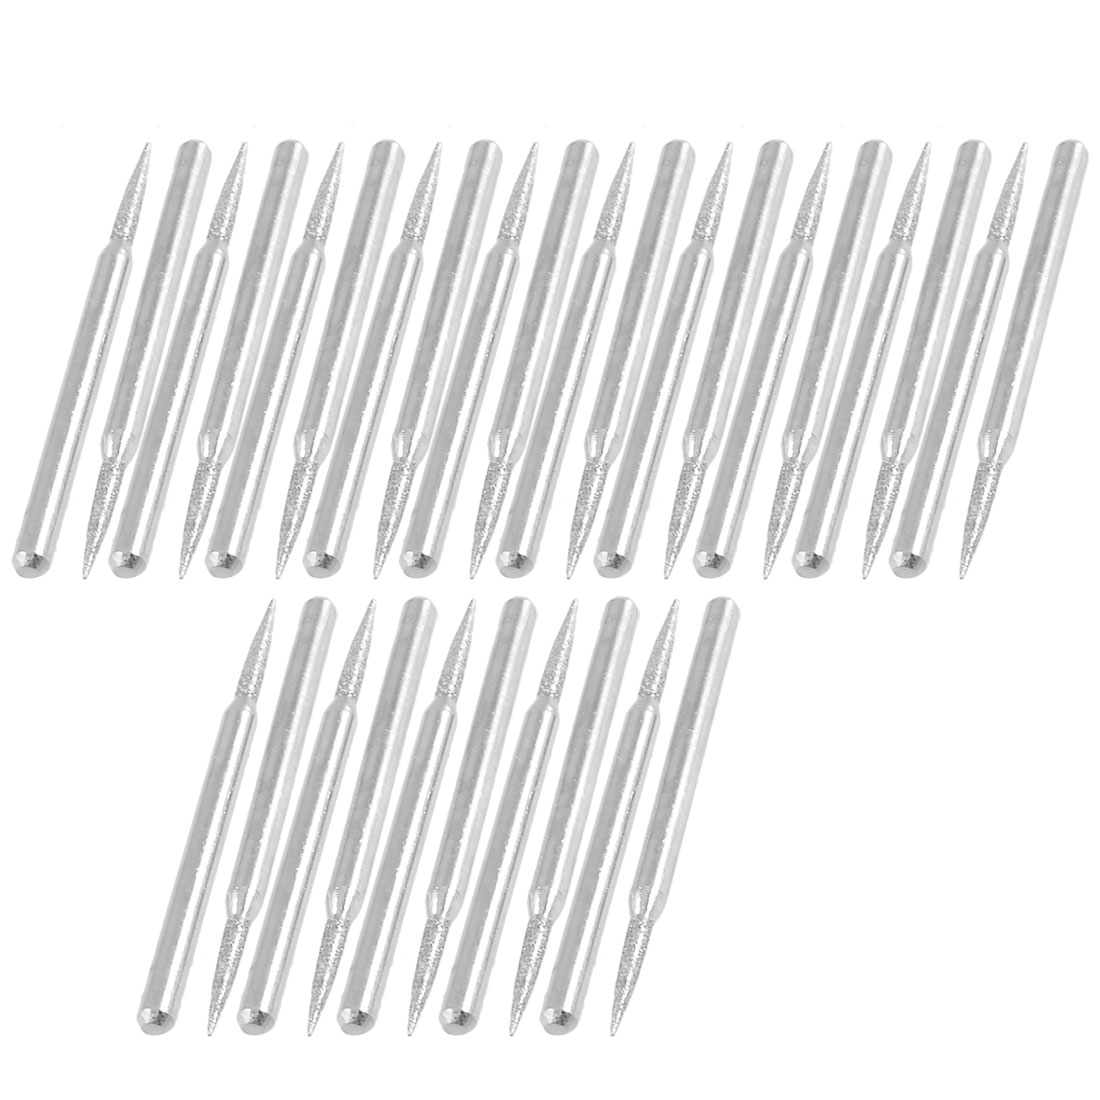 30 Pcs 2mm Taper Point 3mm Shank Alloy Diamond Mounted Bits Grinding Tool